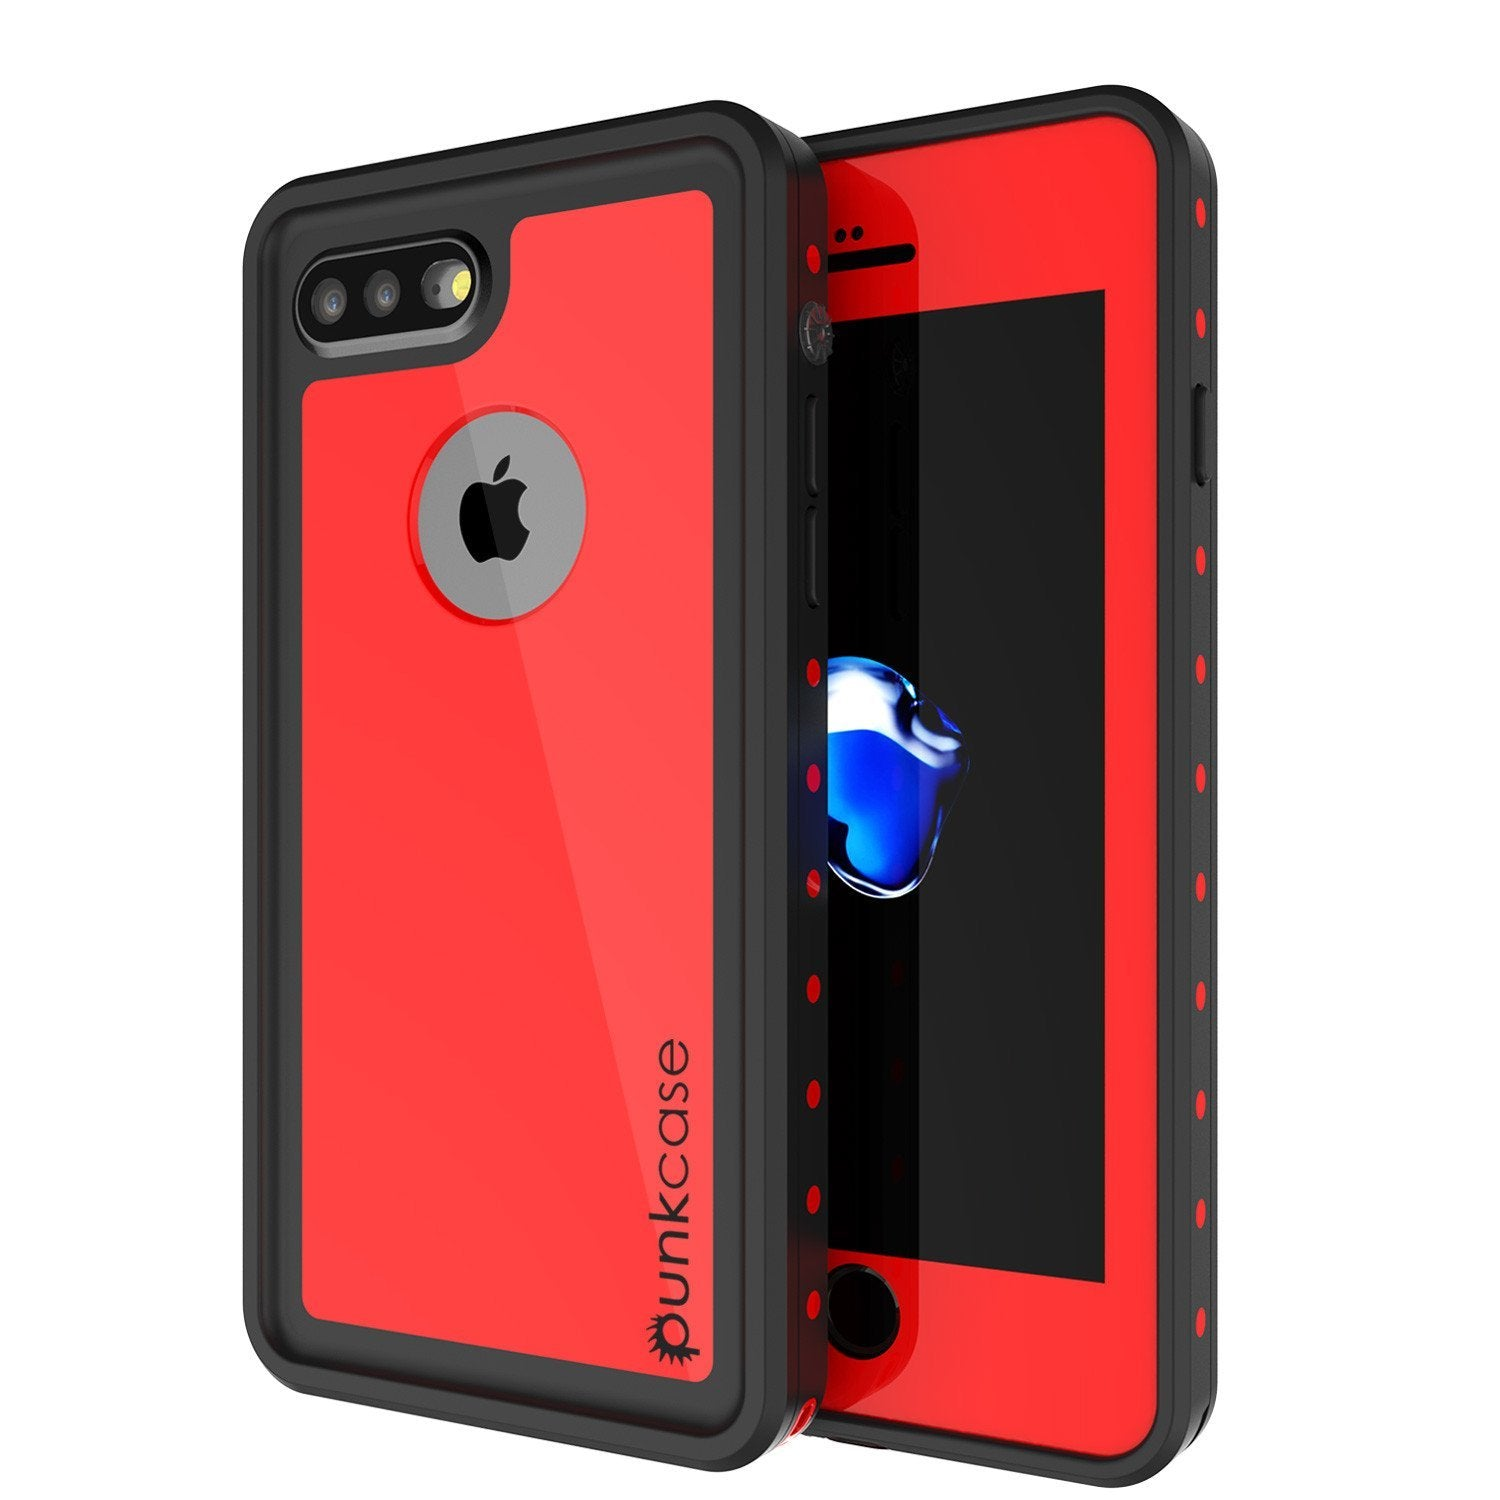 iPhone 8+ Plus Waterproof IP68 Case, Punkcase [Red] [StudStar Series] [Slim Fit] [Dirtproof]